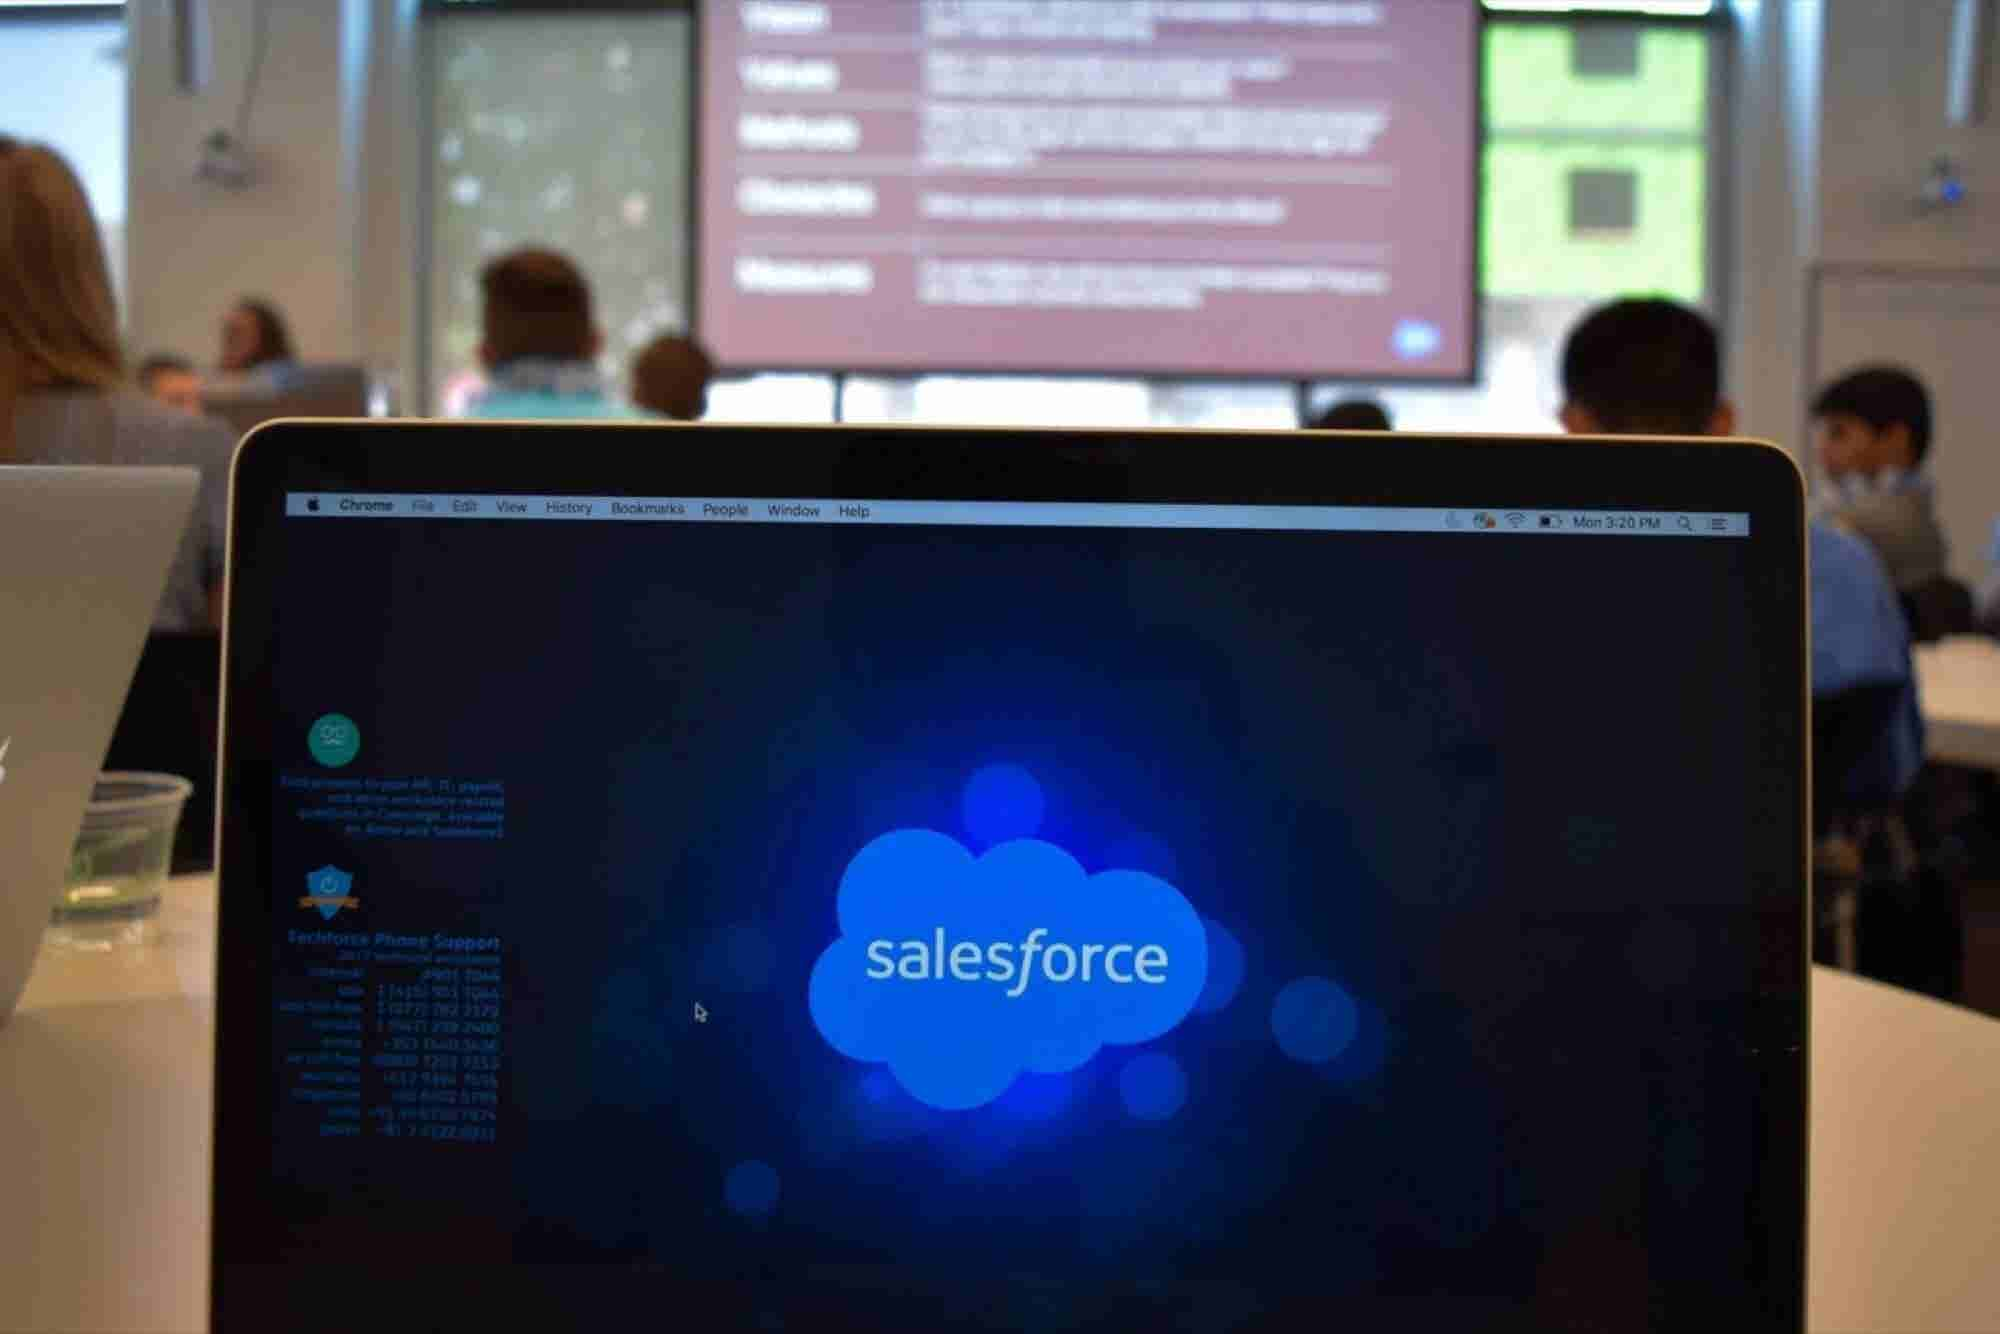 Salesforce to Buy Demandware for About $2.8 Billion